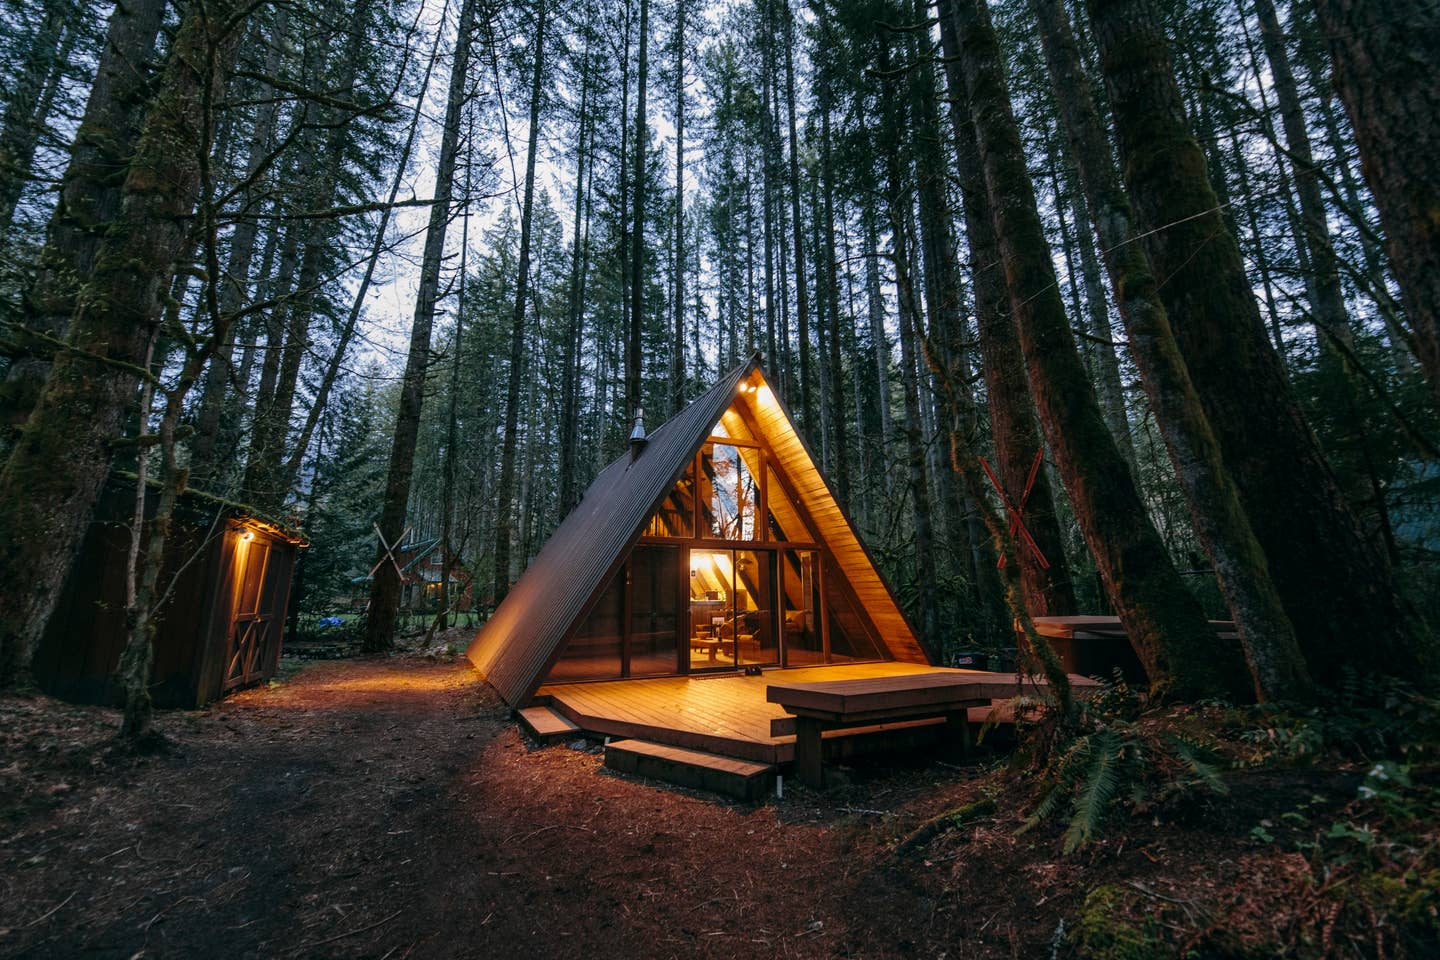 An A-frame cabin with a wide, low front deck at dusk with its lights on, surrounded by evergreen trees.